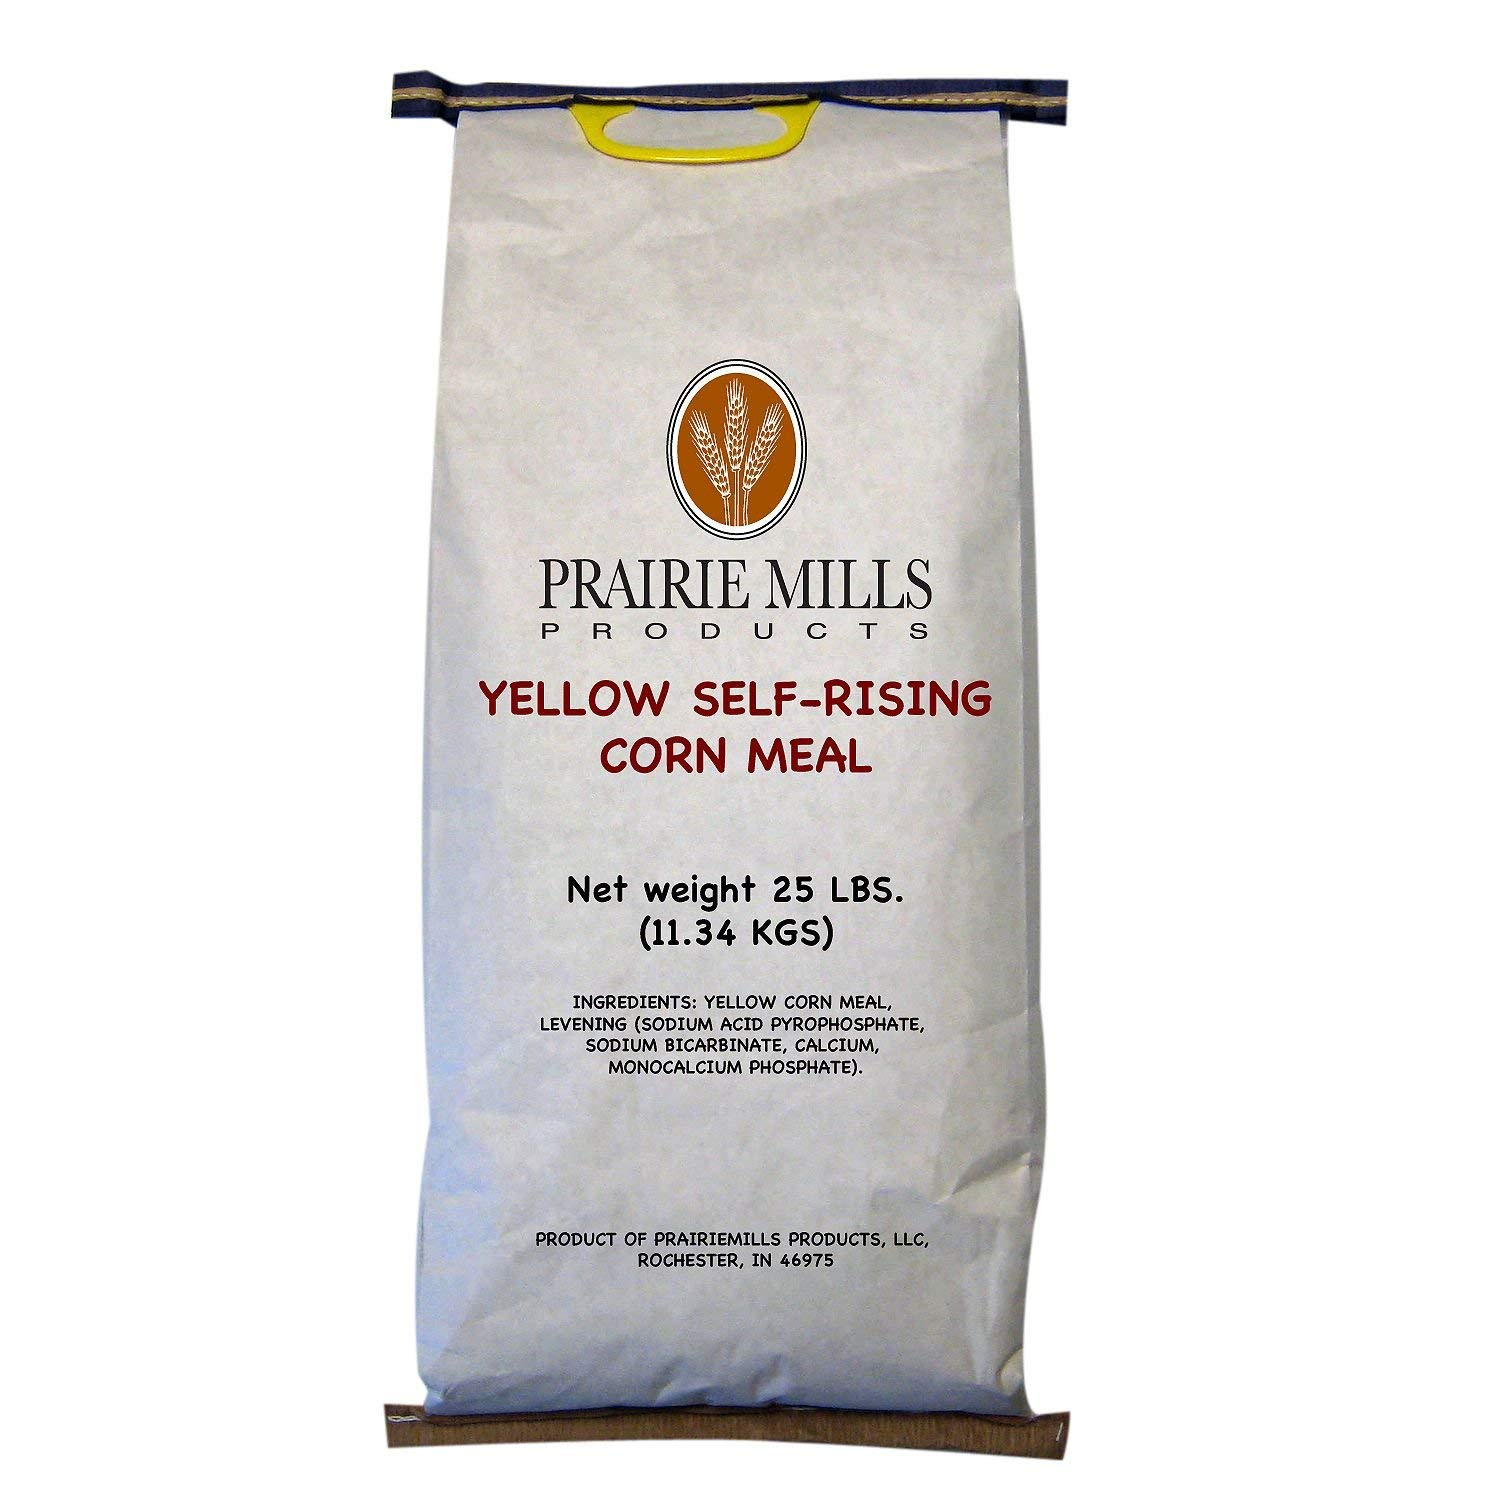 Prairie Mills Self-Rising Yellow Corn Meal (25 lb.) vevo